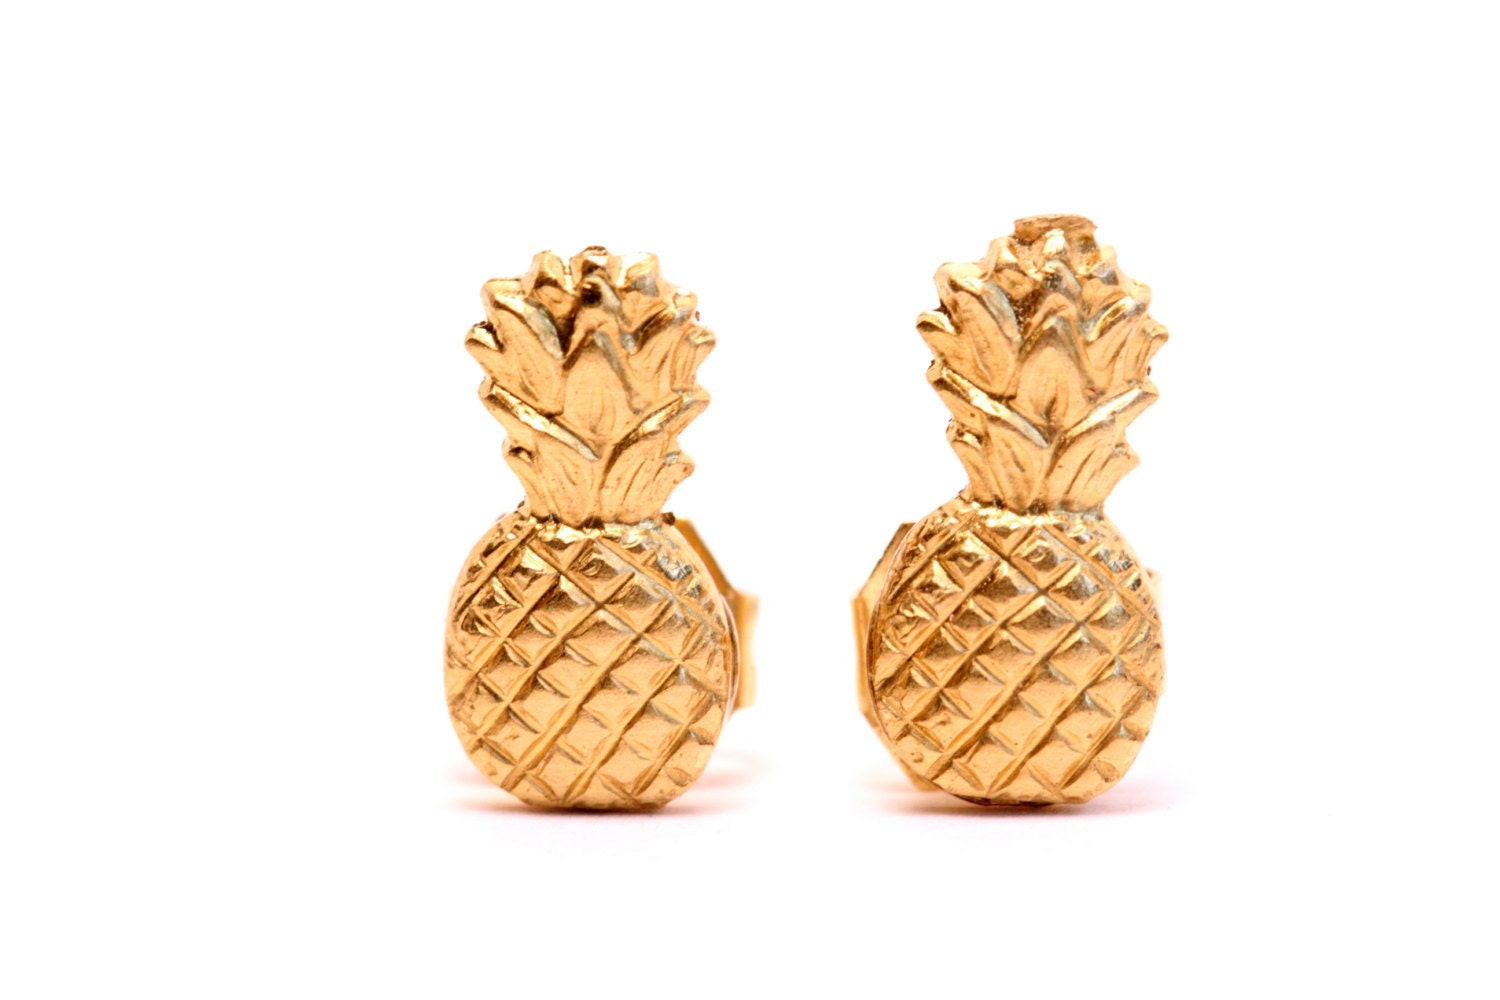 lewis rsp john online pdp com gold buyestella at stud pineapple estella main johnlewis bartlett earrings